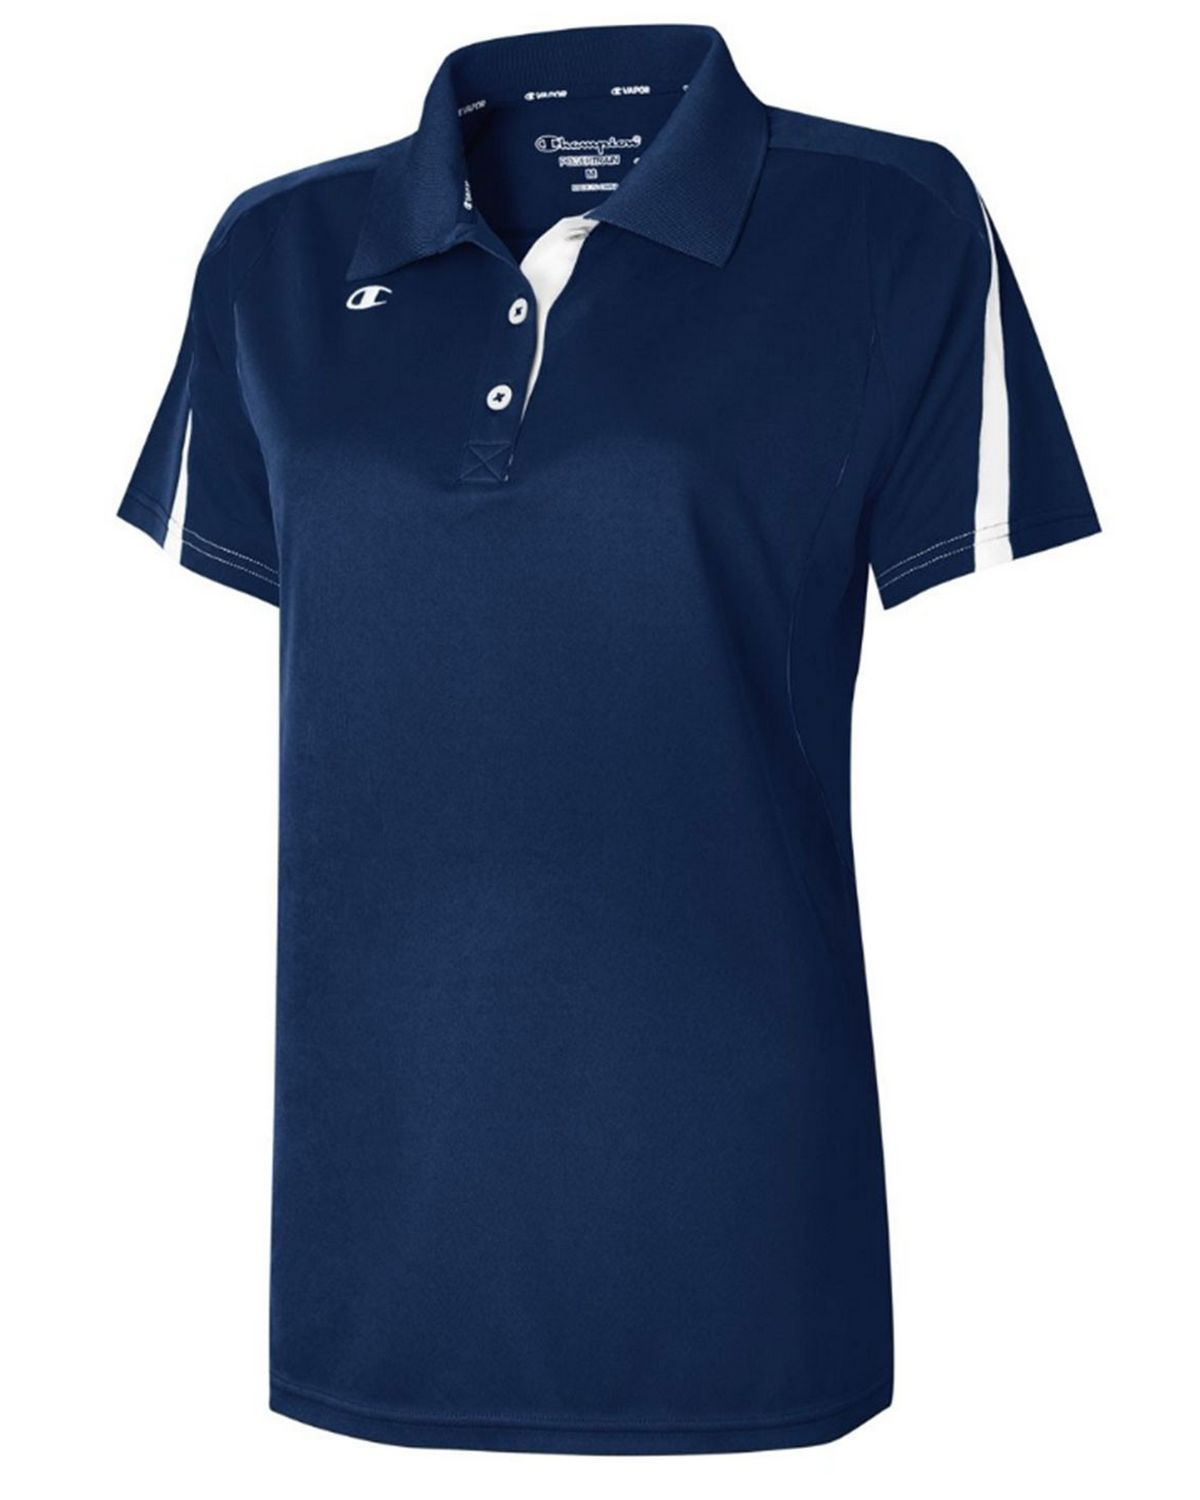 Champion H912 Women's Victory Vapor Polo Shirt - Team Navy/White - XS #vapor